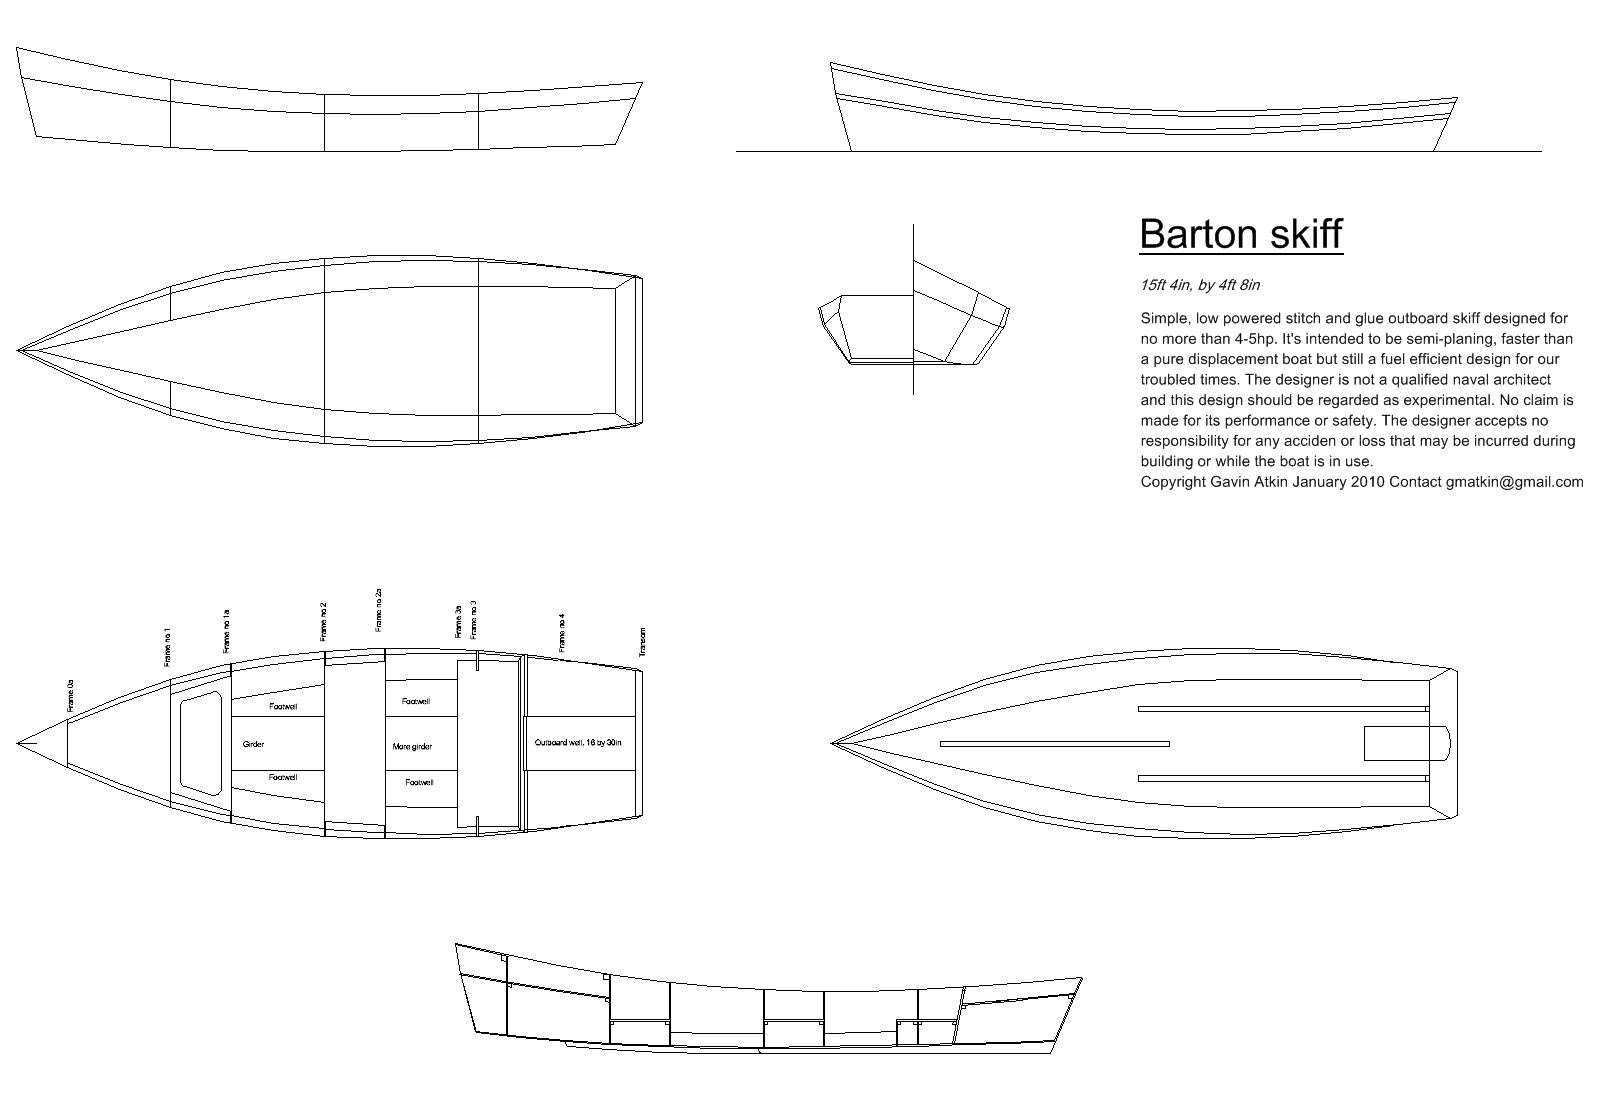 boat plans, outboard boat plans, boat building plans